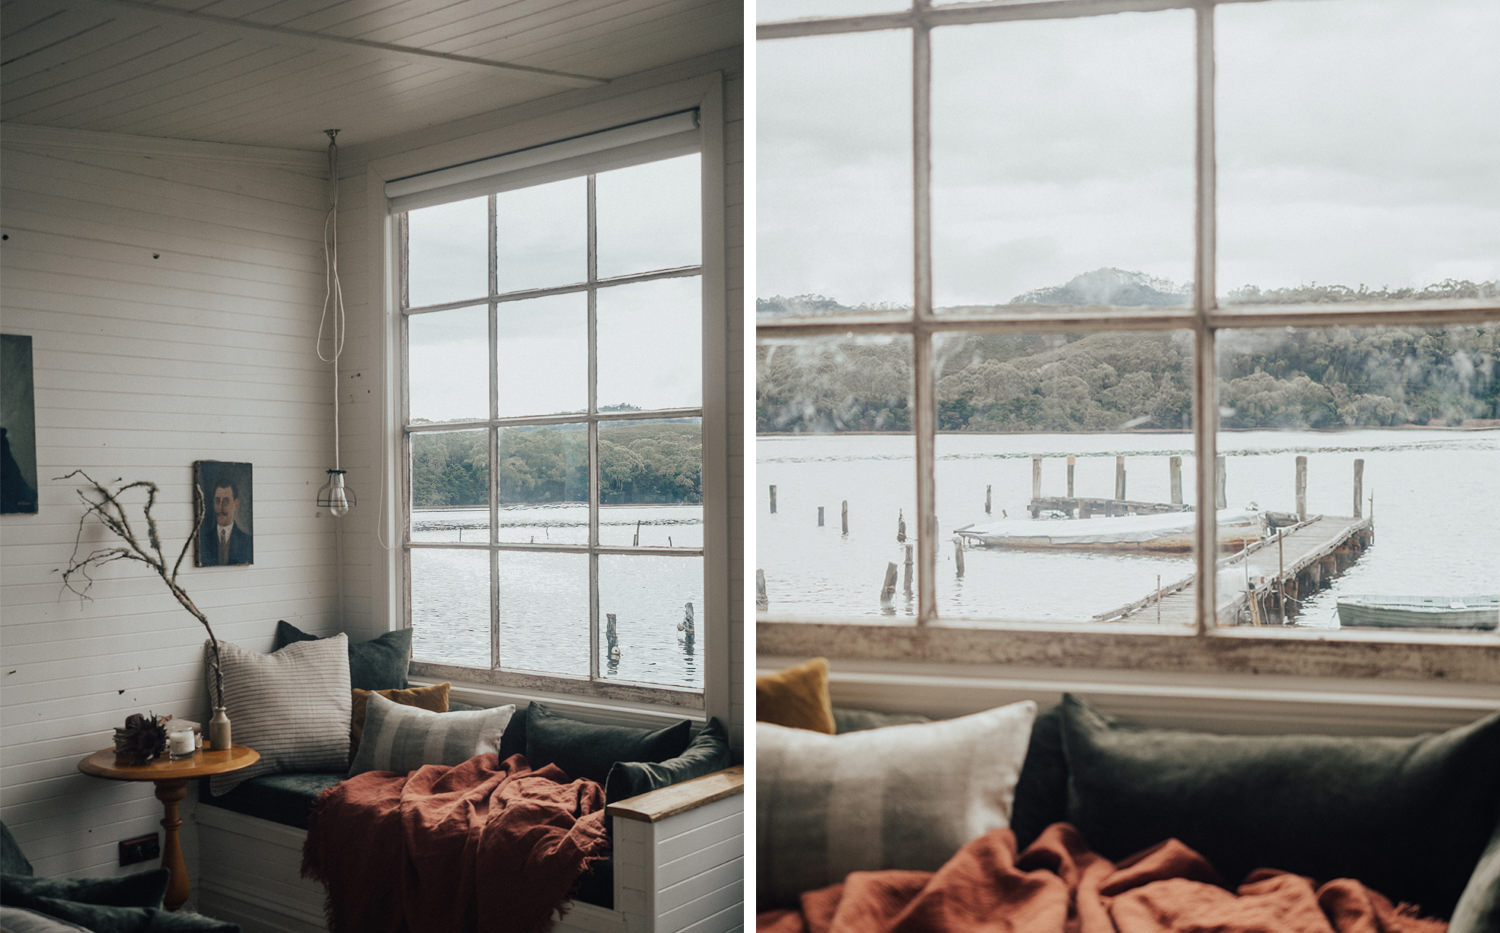 Travel_Australia_Guide_Weekend_Destination_Hotel_Airbnb_Inique_Shack_Cabin_Beach_Tasmania_Captains Rest_Sarah Andrews_TAS_Strahan_Pauline Morrissey.jpg